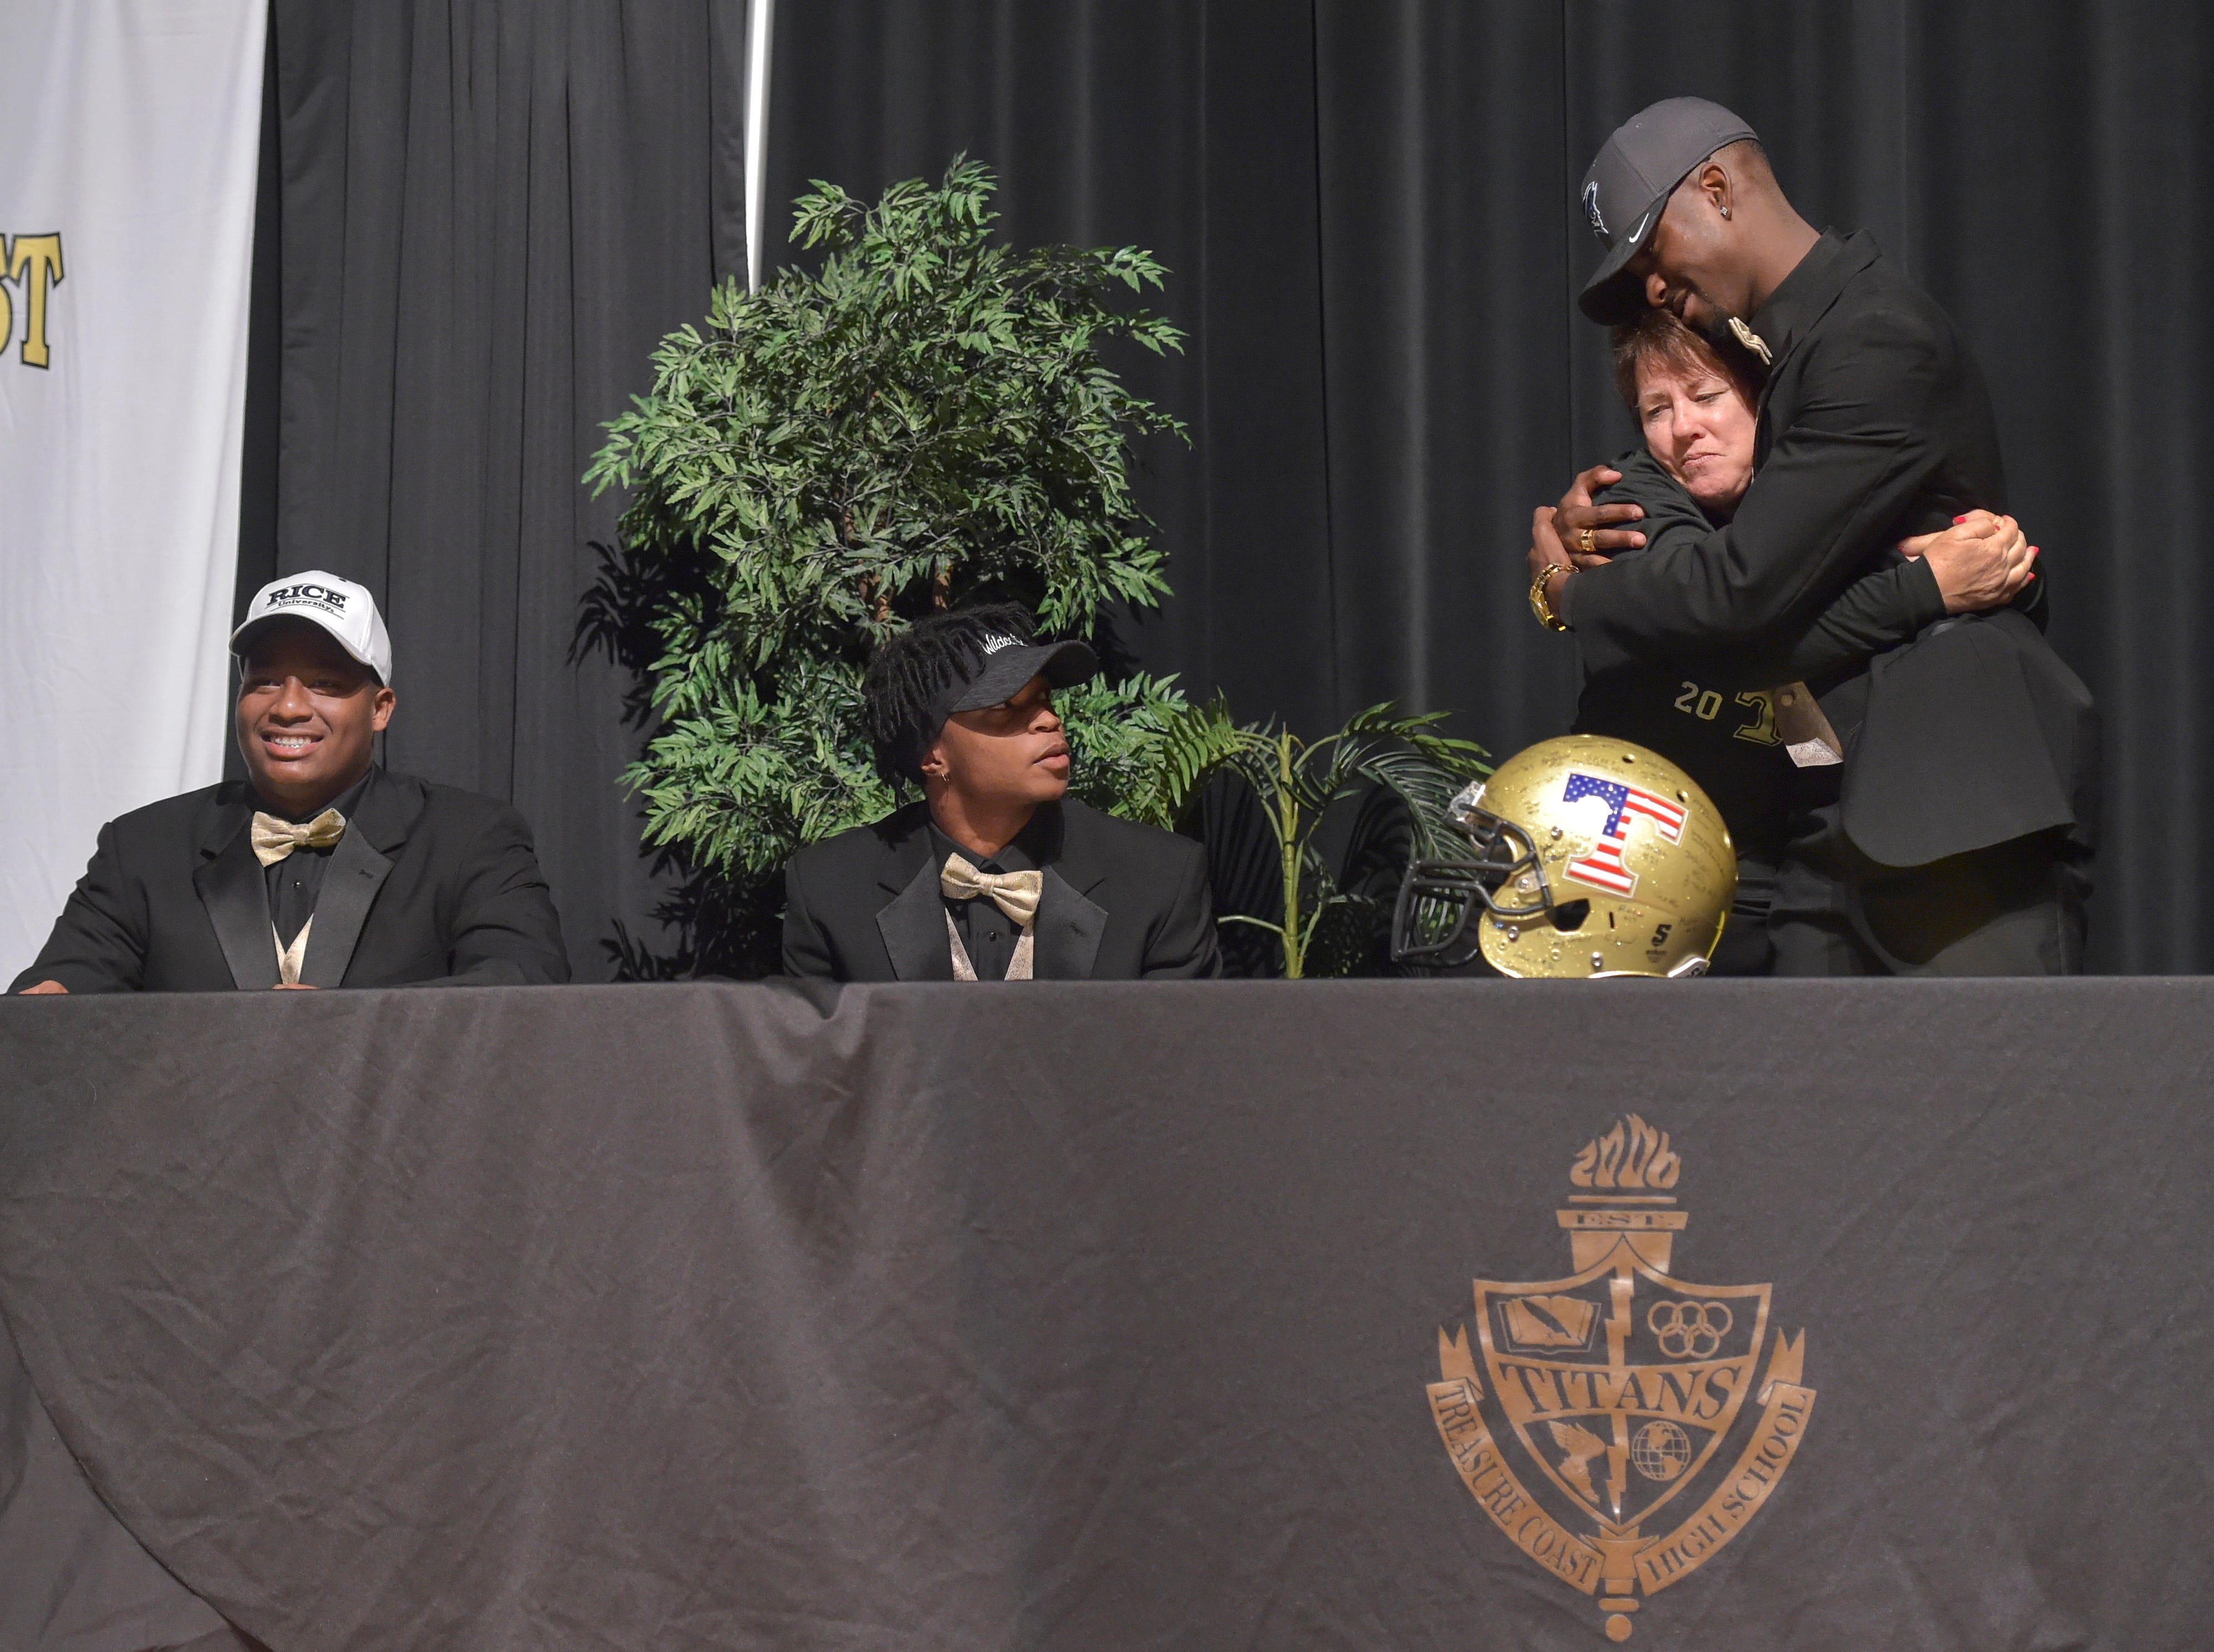 "Treasure Coast High School Principal Susan Seal (third from left) shares a hug with Tyrec Thompson while with (from left) Jerry Johnson and Shamar Minnis during the school's National Signing Day ceremony for football and baseball athletes on Wednesday, Feb. 6, 2019, inside the school's auditorium.  ""Great kids,"" Seal said. ""It feels wonderful because they came here my first year as a principal, so it's really neat to watch the evolution of young men who are not sure where they're headed, and being faced with a lot of obstacles and different choices, to be able to, for them, to see that success is just amazing."" Thompson signed with Iowa Western, Johnson signed with Rice University, and Minnis signed with Bethune-Cookman, all to play football. ""It feels amazing,"" Thompson said. ""I'm happy for my family, friends, and coaching staff, and the people that helped me get to where I am today."""